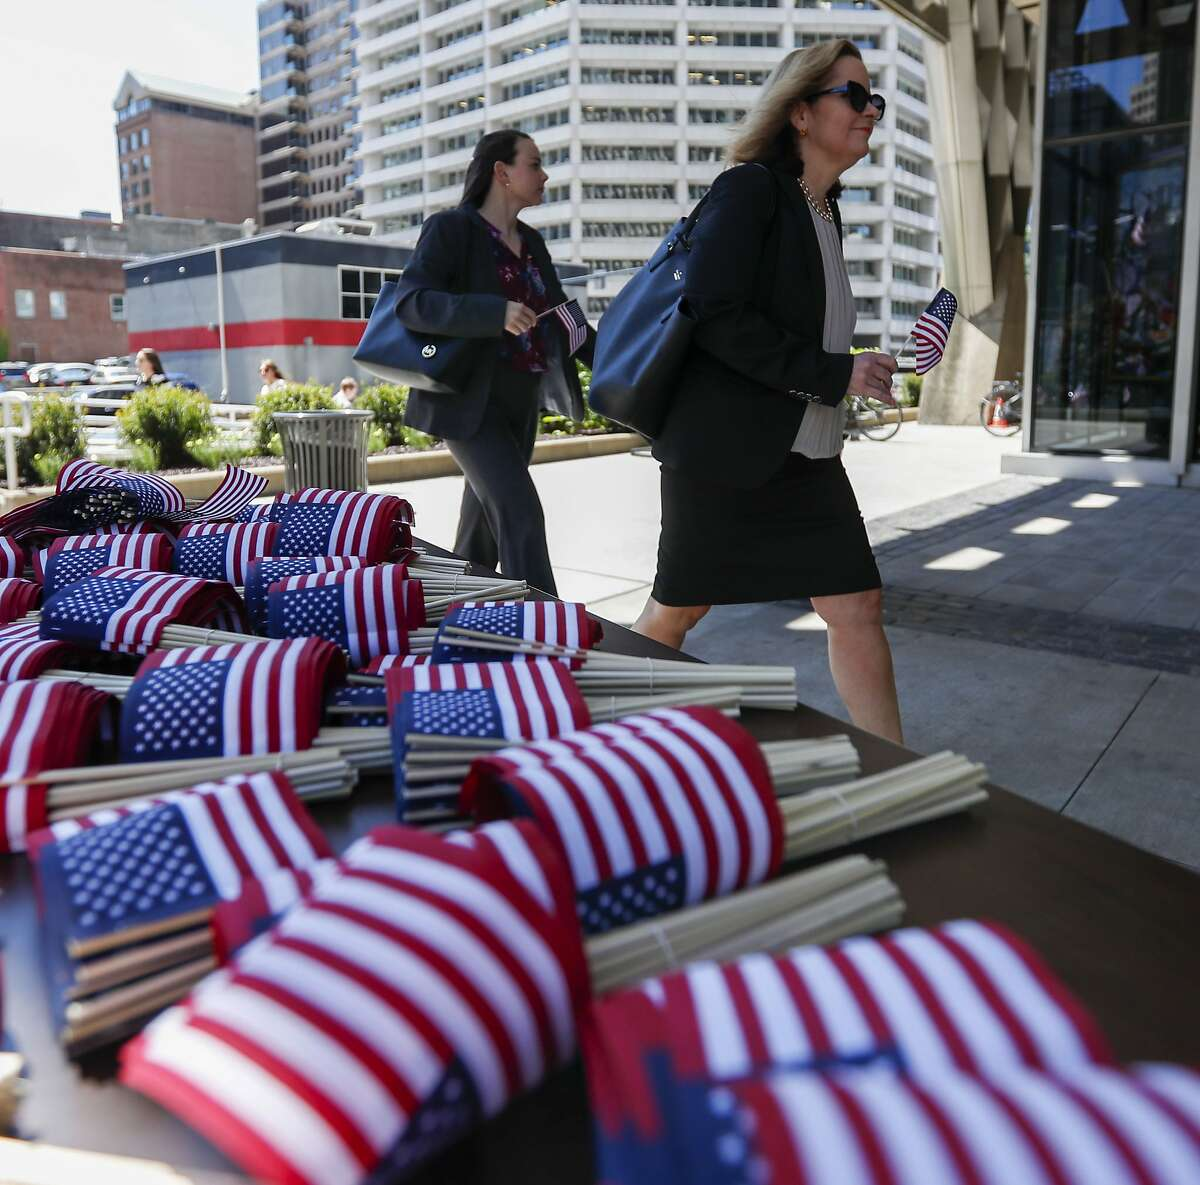 Arriving visitors walk past stacks of American flags that were being distributed before a celebration of Flag Day, Friday, June 14, 2019, in Pittsburgh. (AP Photo/Keith Srakocic)